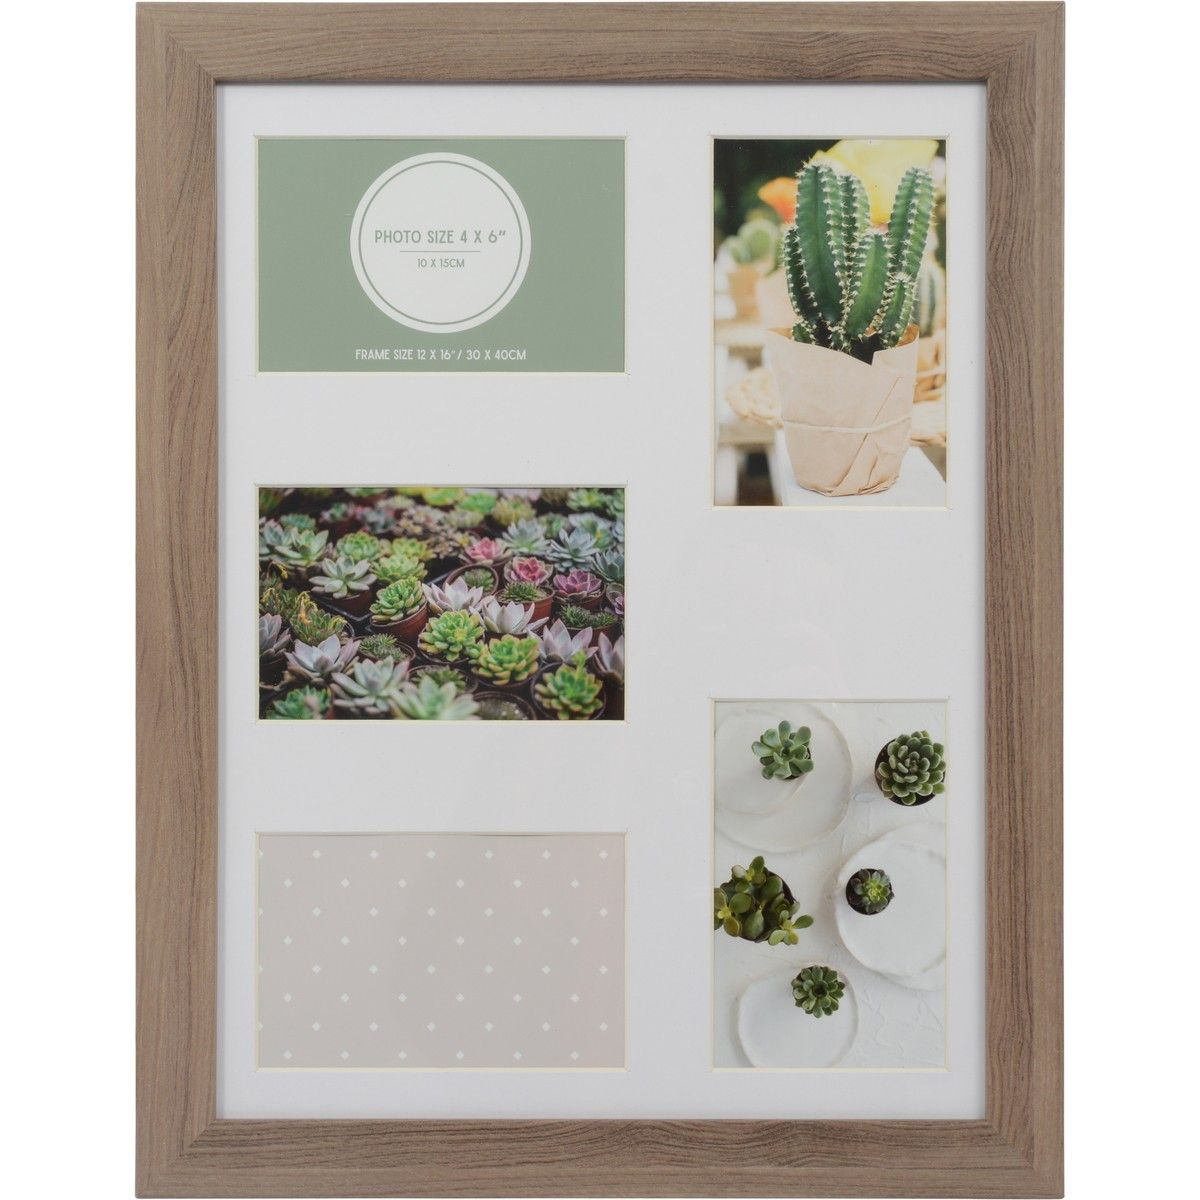 Design House 12x16 Photo Frame With 5 Openings Brown Big W Photo Frame Frame House Design